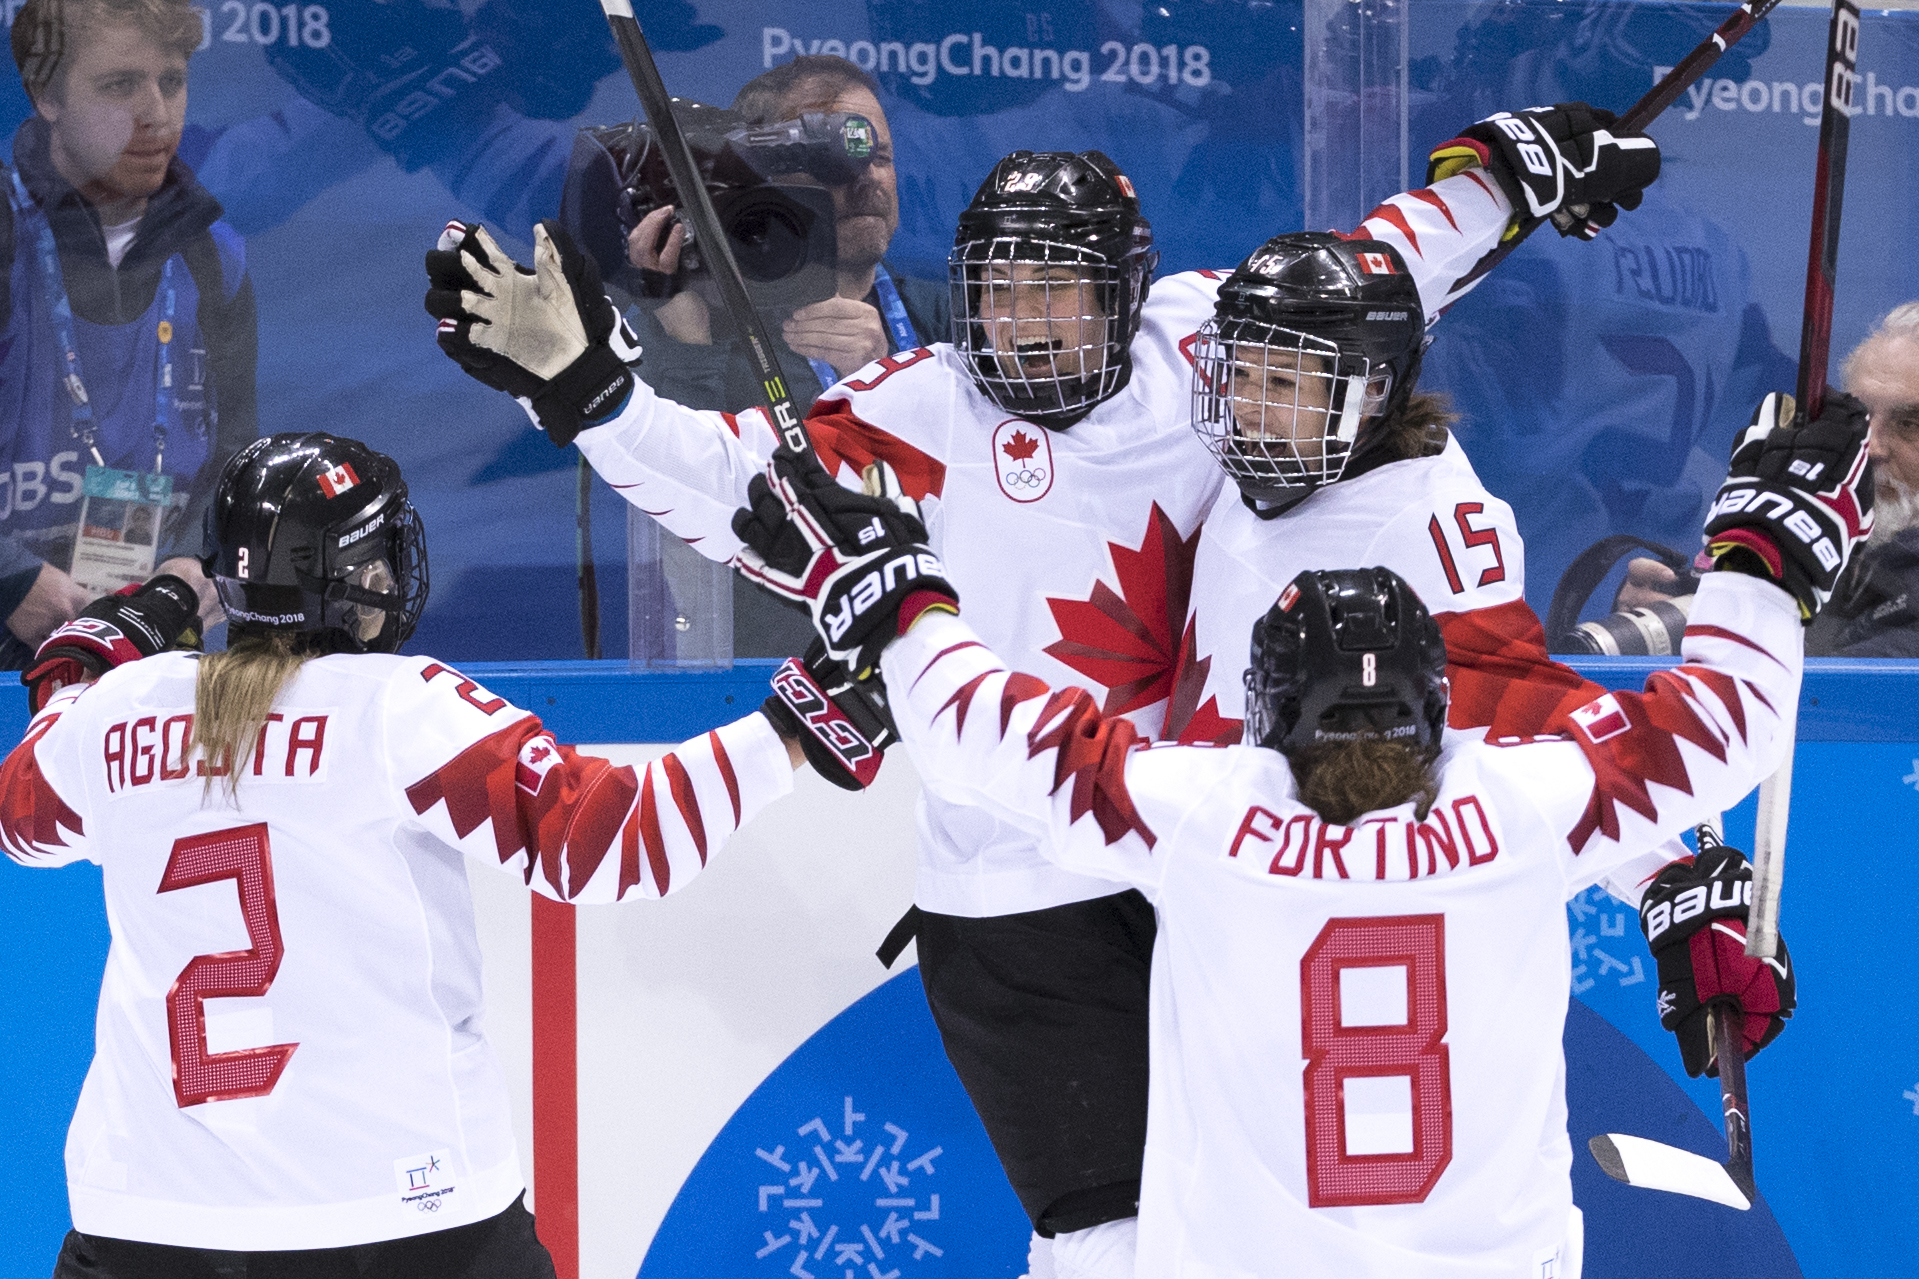 Team Canada battles the United States for the gold medal in women's Hockey at the Gangneung Hockey Centre during the PyeongChang 2018 Olympic Winter Games in Gangneung, South Korea, Wednesday, February 21, 2018. COC – David Jackson